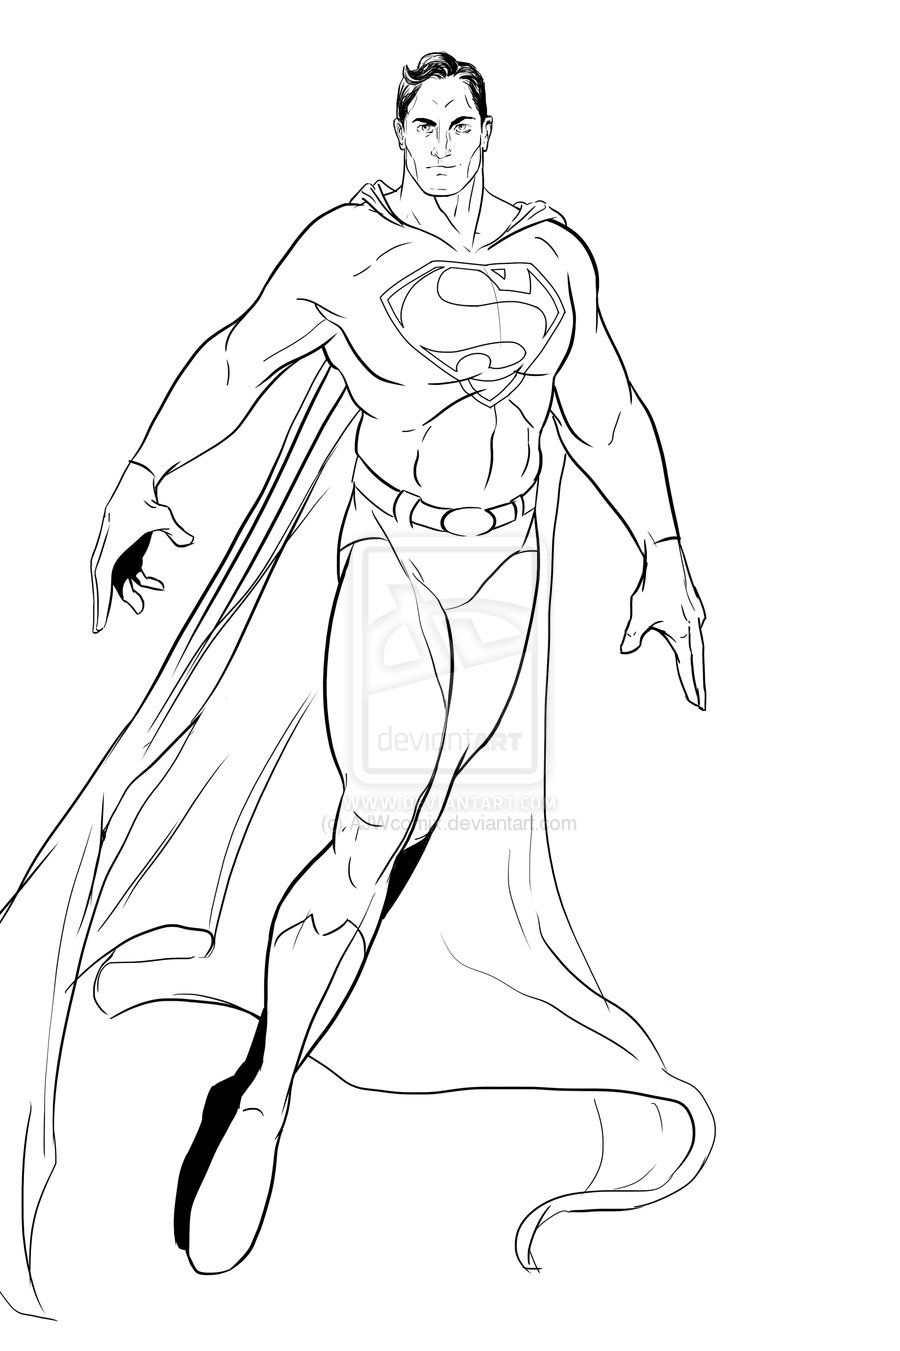 clipart freeuse stock Art by ajwcomix deviantart. Drawing superman line